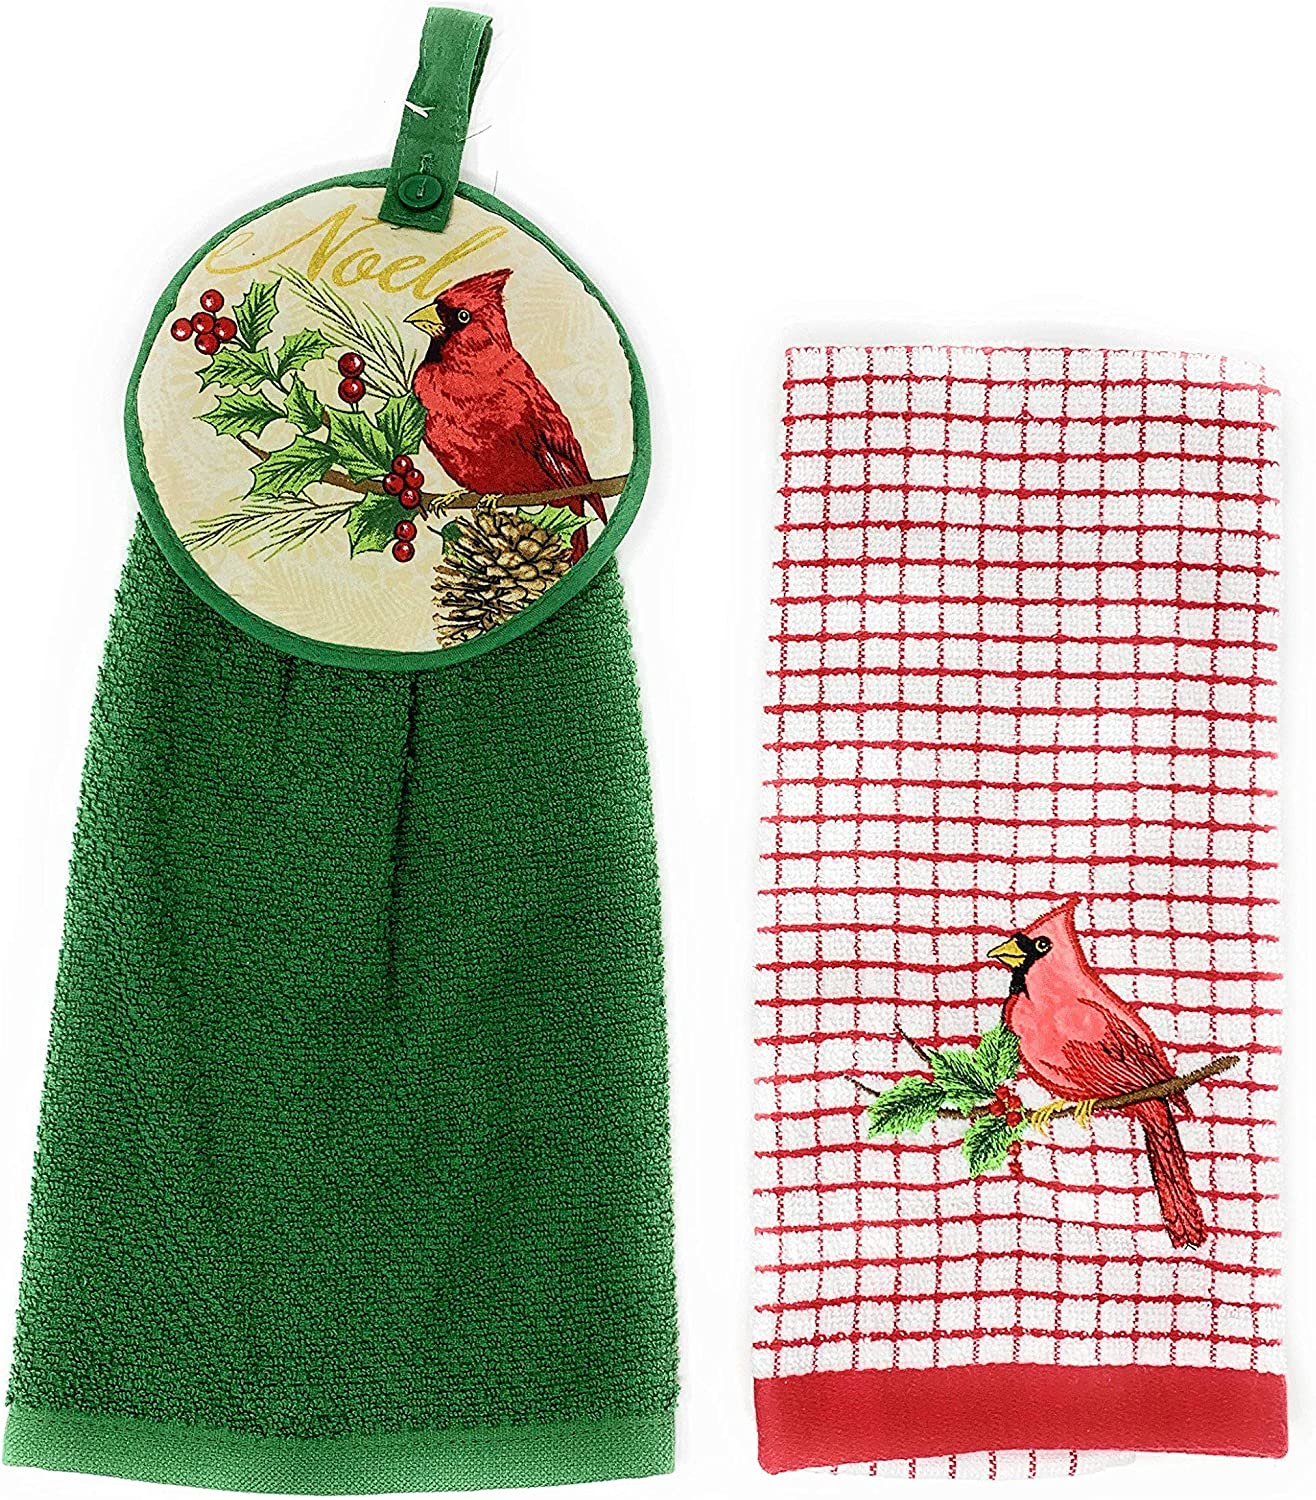 2-Pack Northeast Home Goods Embroidered Textured Cotton Hanging Kitchen Tie Towel Set Poinsettia /& Cardinal